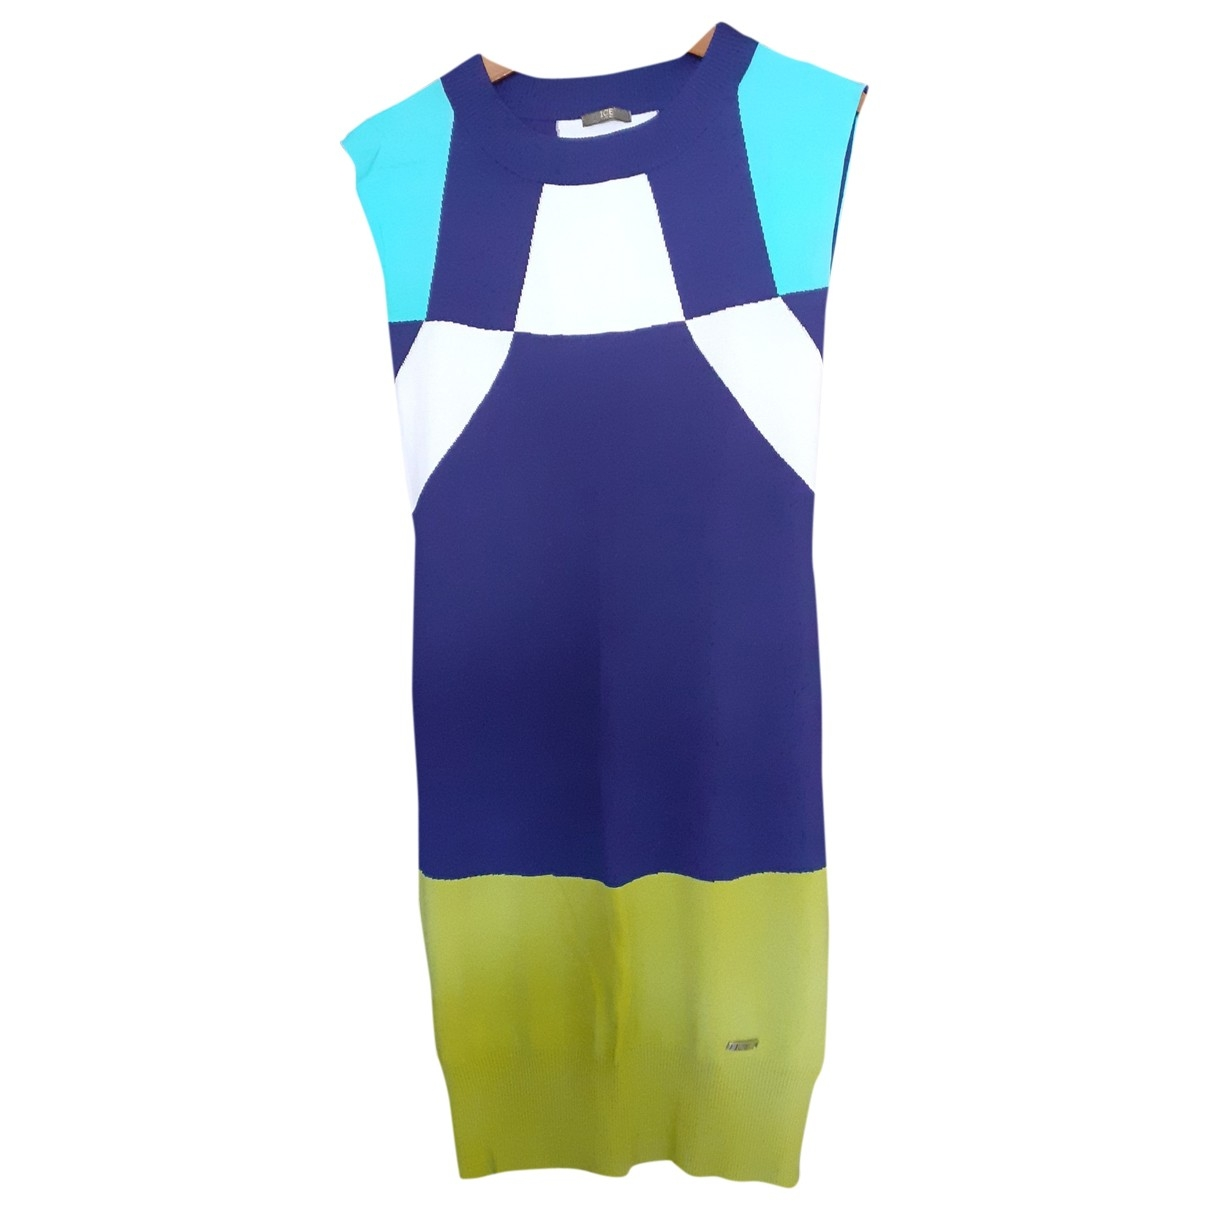 Non Signé / Unsigned \N Cotton dress for Women One Size FR